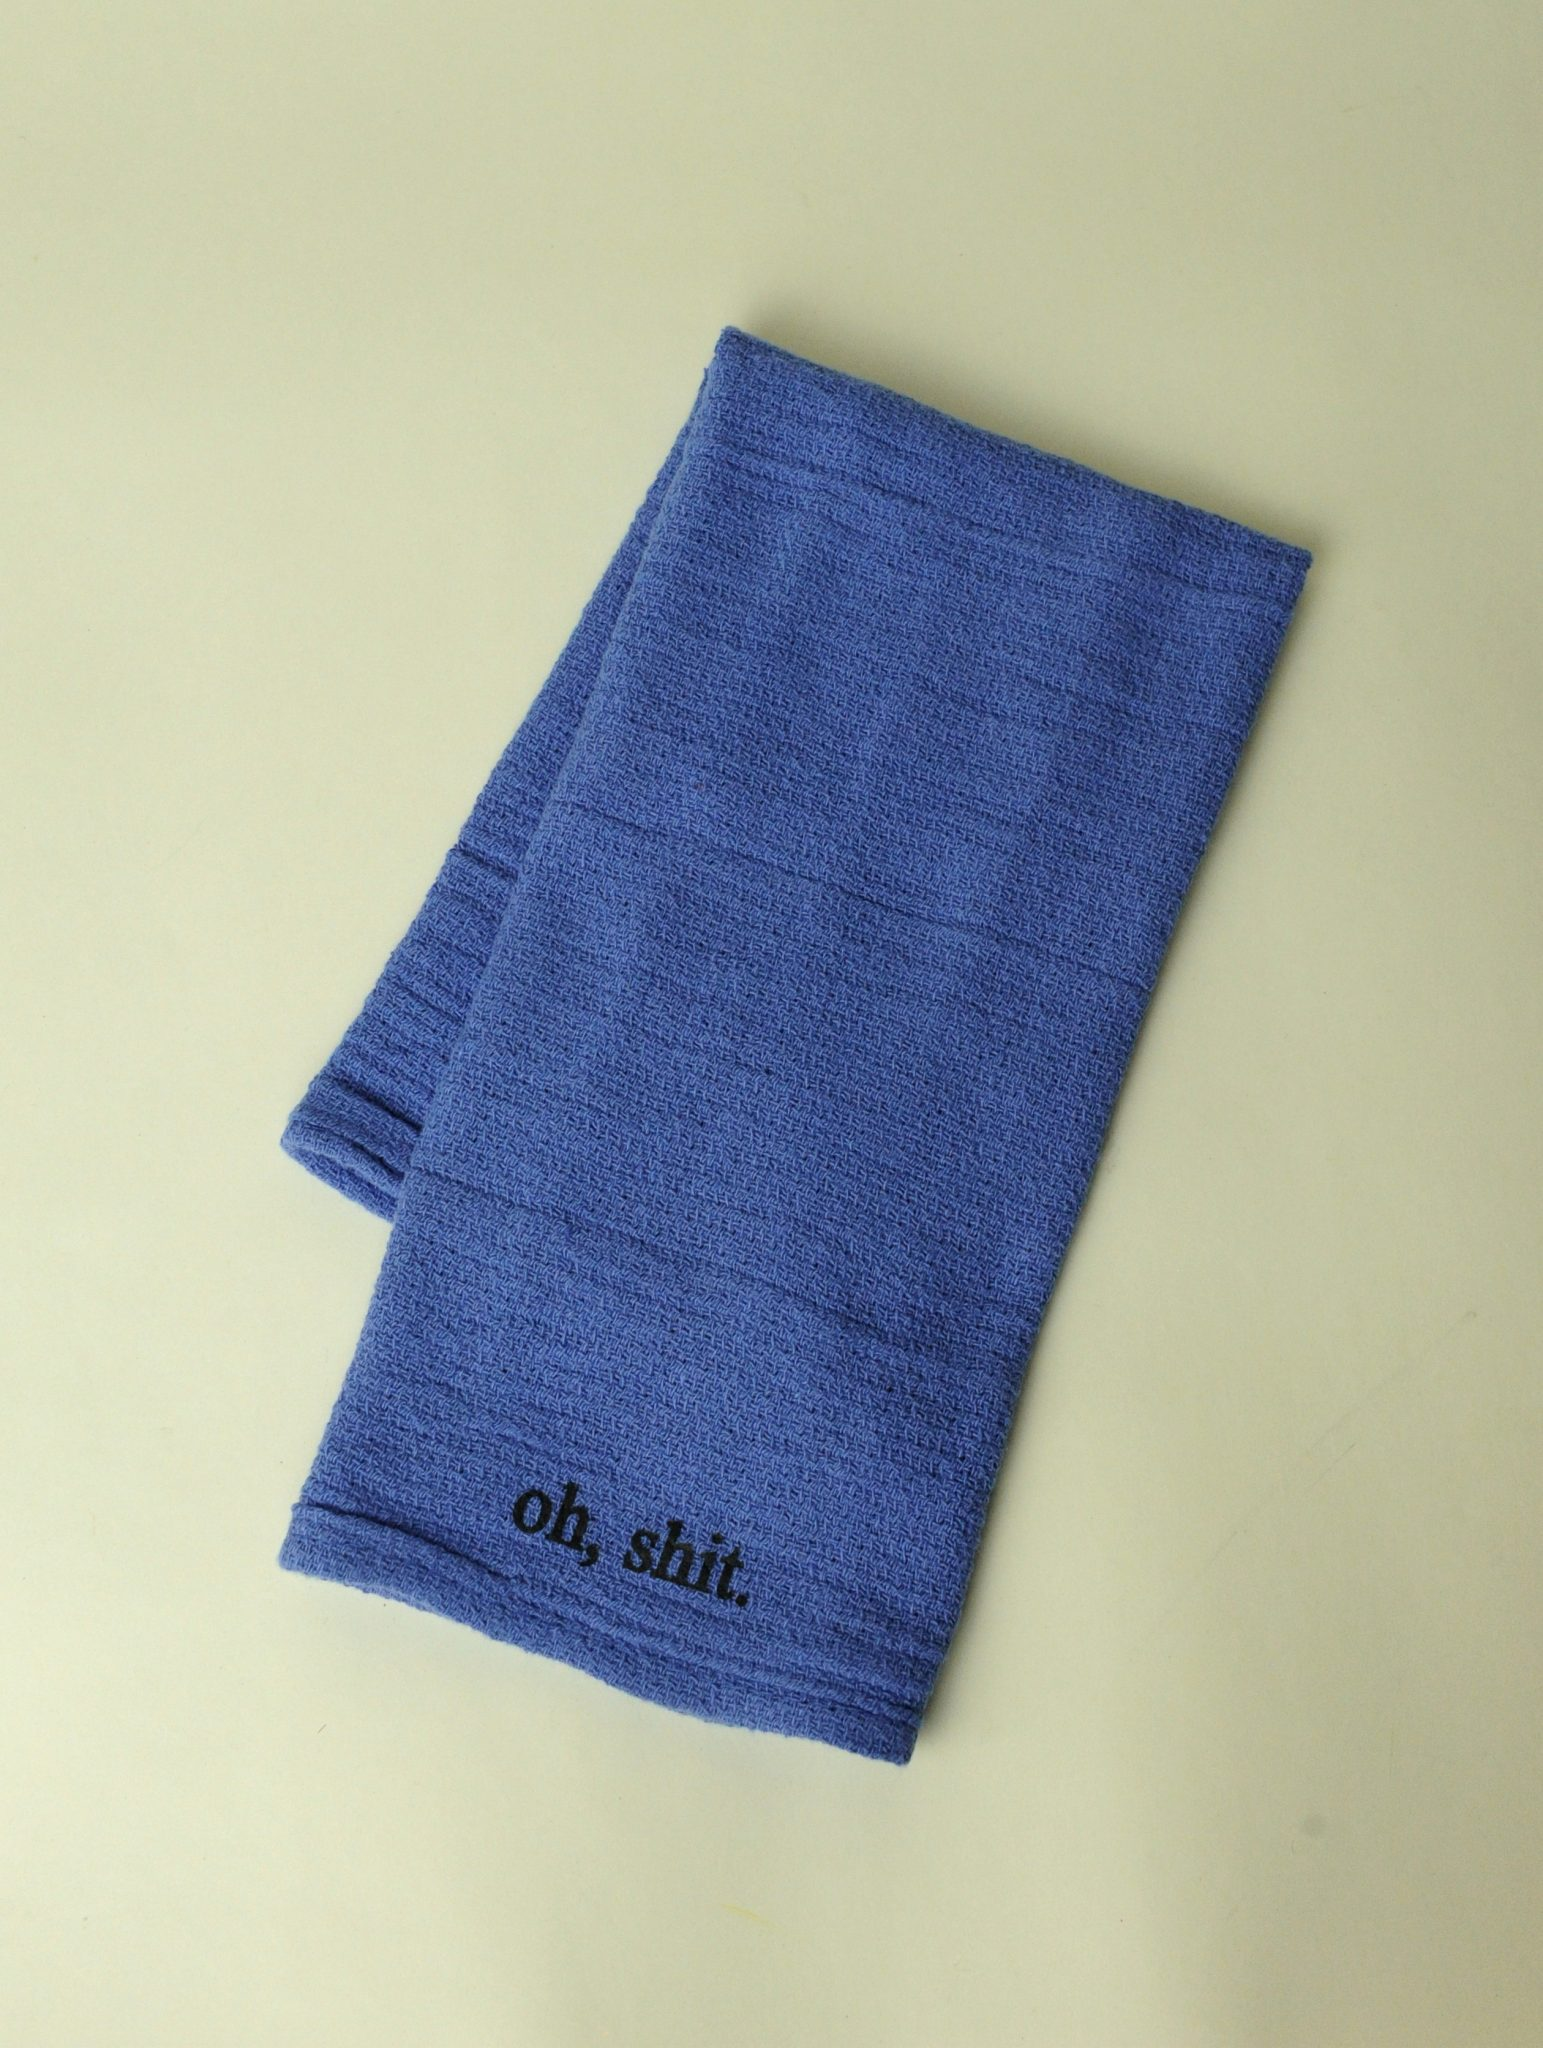 Re-purposed 100% Cotton Blue Surgical Hand Towel - Oh, shit.